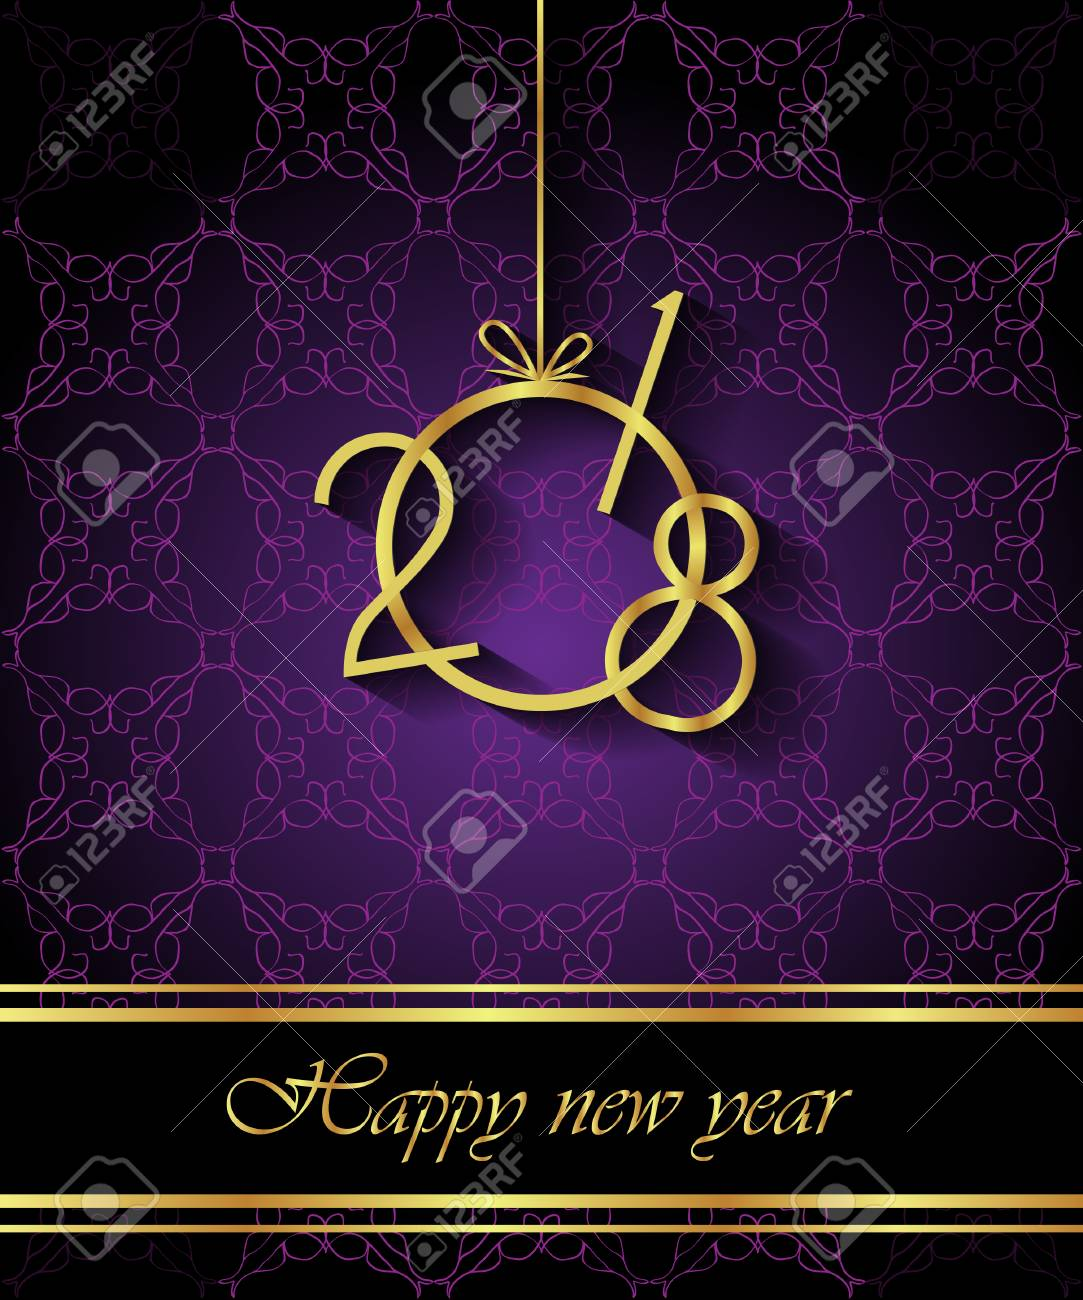 2018 happy new year invitation on the dinner background for flayer stock vector